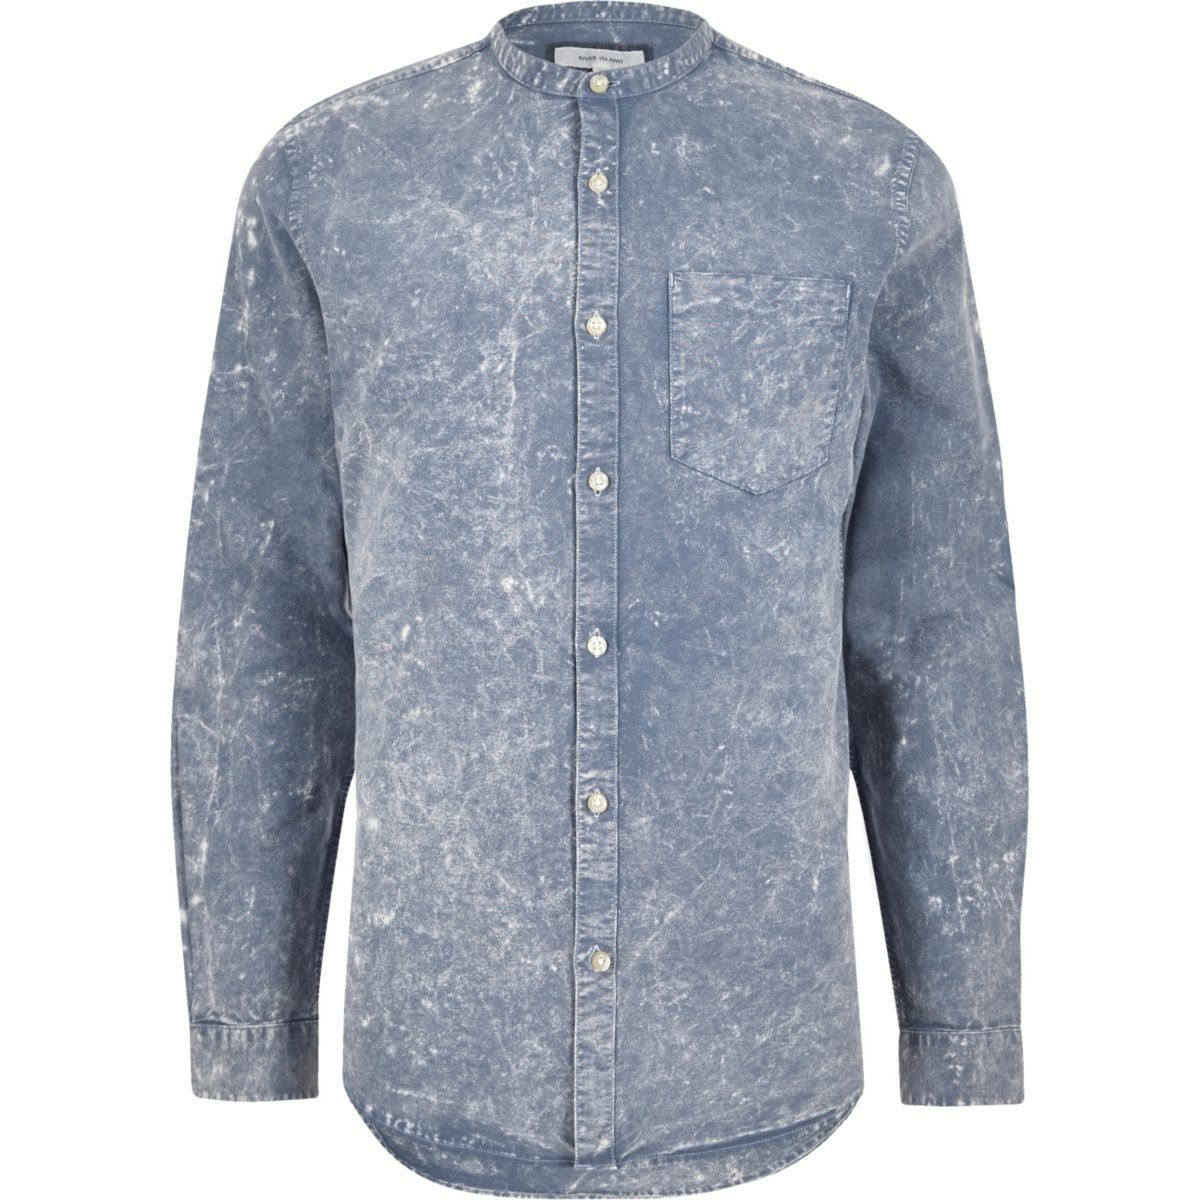 Blue acid wash Oxford grandad shirt